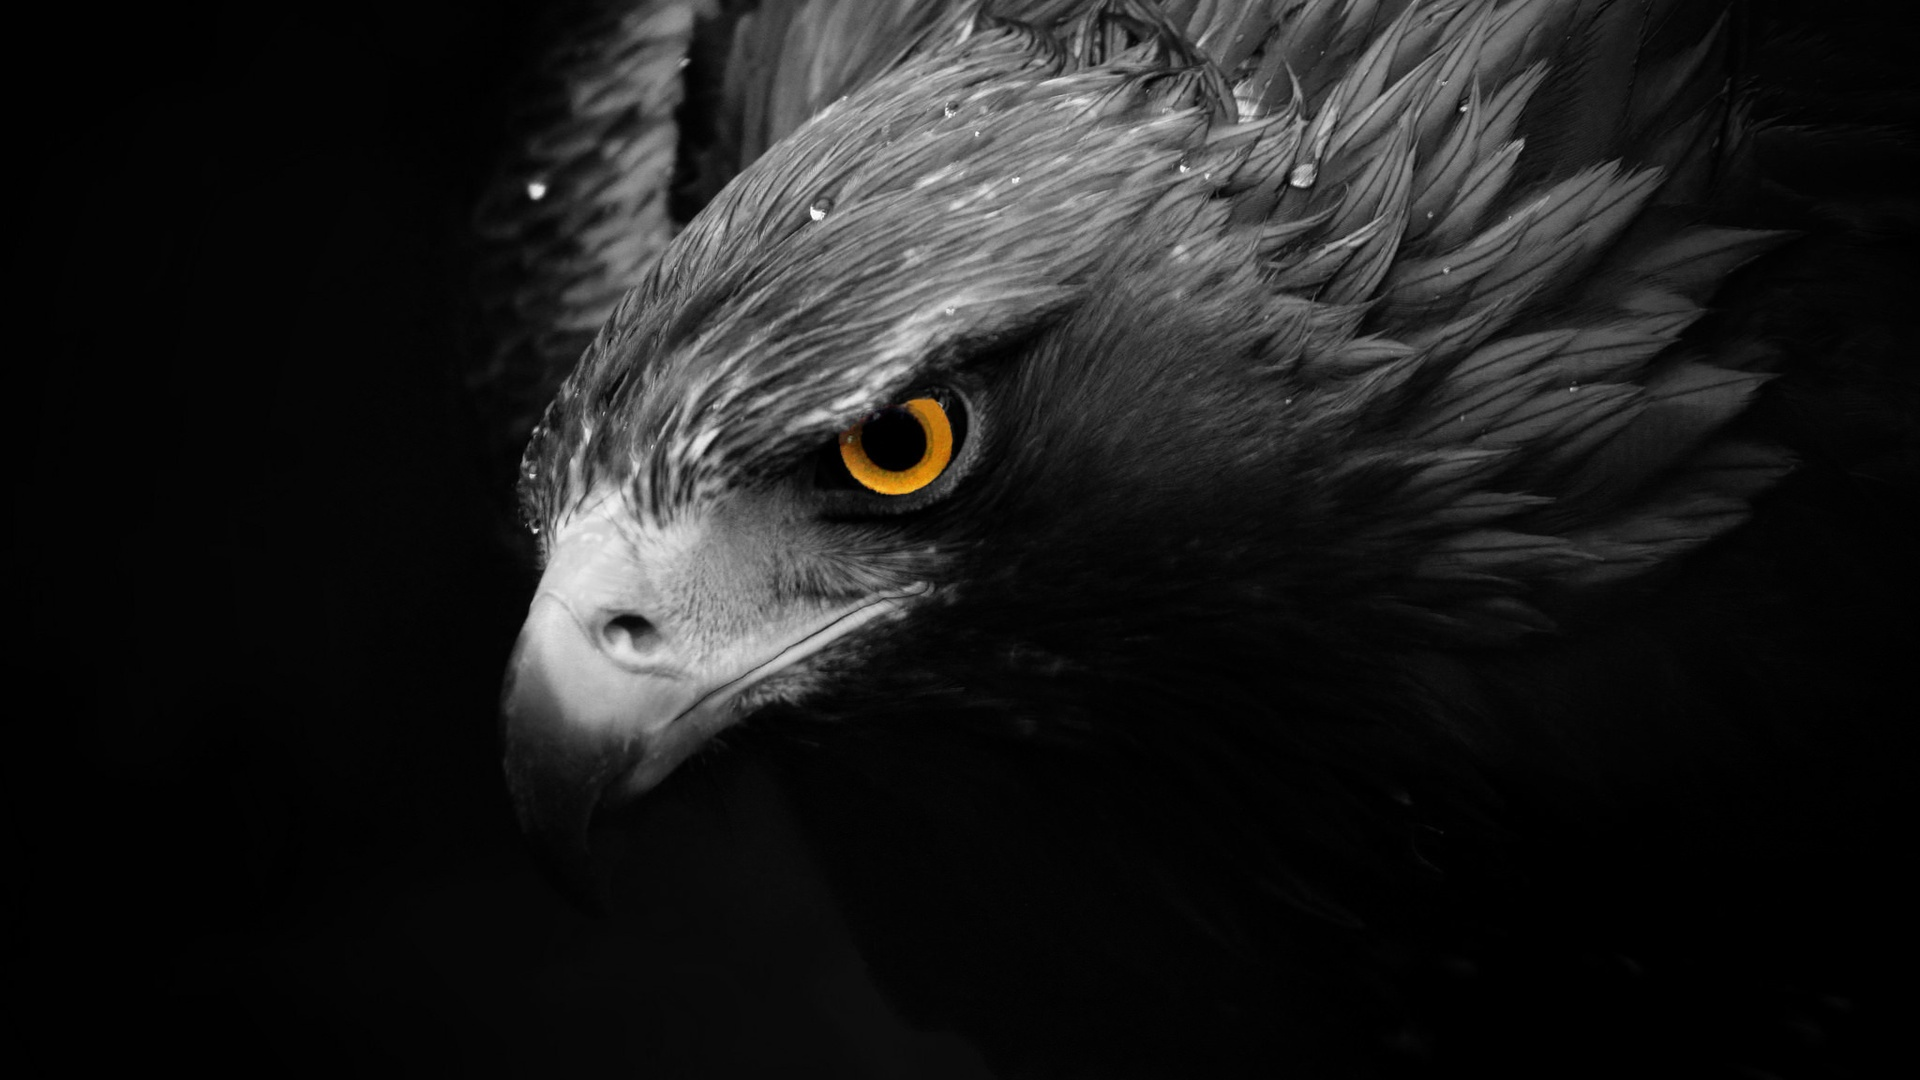 How To Download Wallpaper For Iphone 6 Adler Wallpapers Hintergr 252 Nde 1920x1080 Id 555367